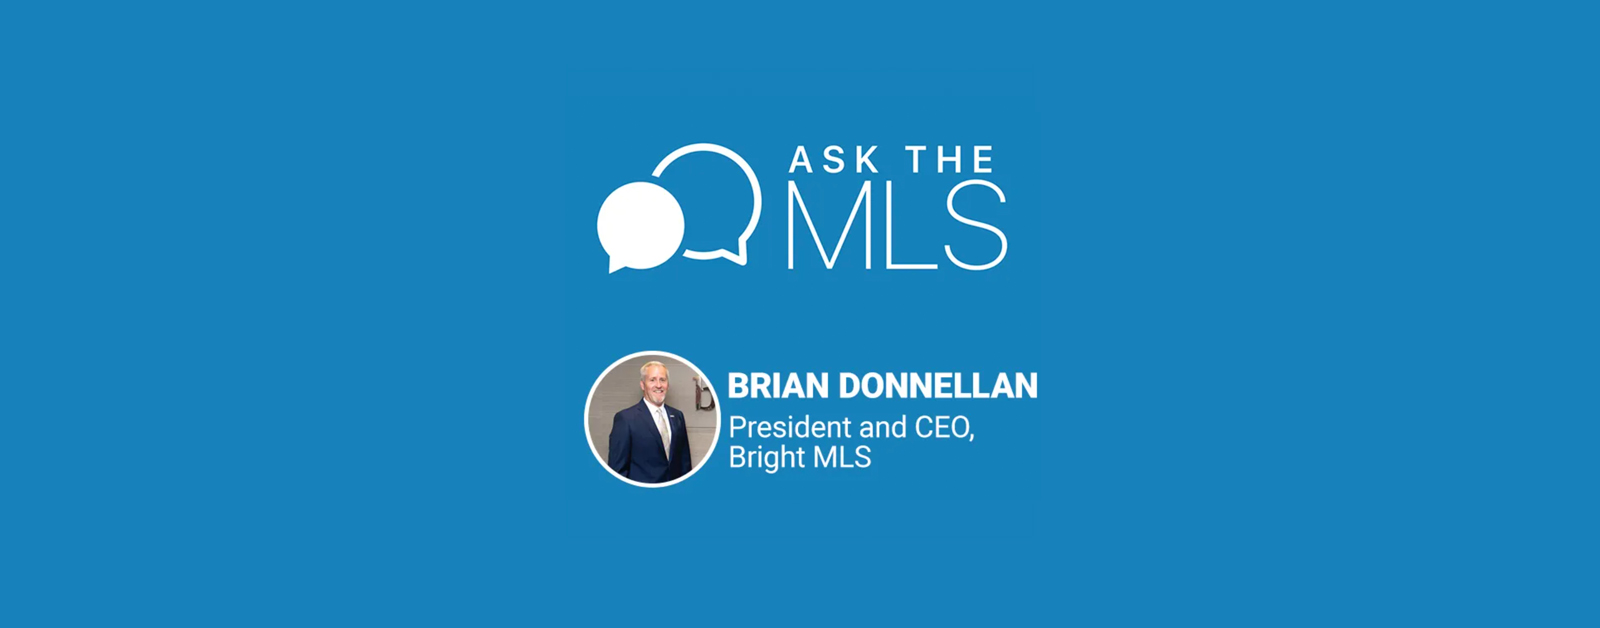 Ask the MLS Brian Donnellan